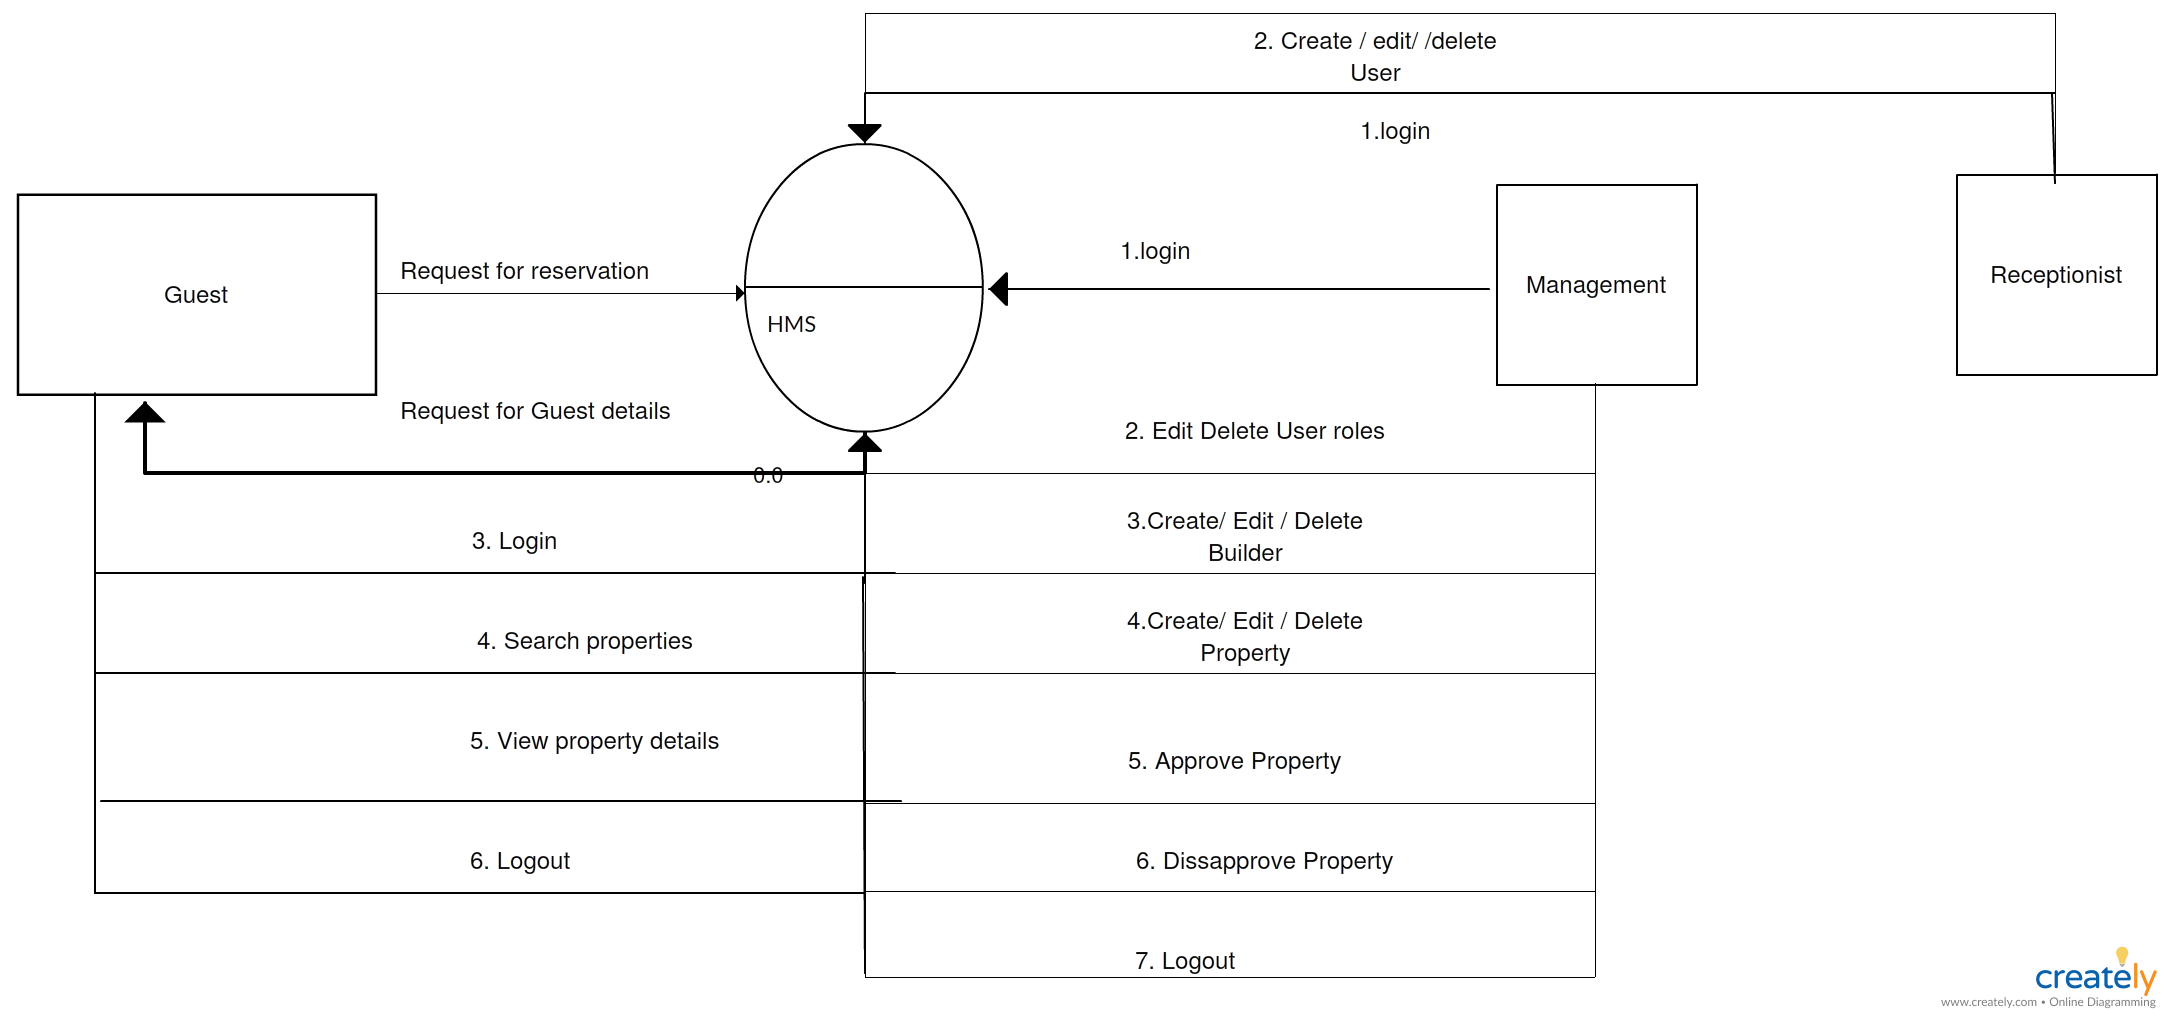 Data Flow Diagram  Dfd  Gs Of Hotel Management System  Click On The Image To Use This As A